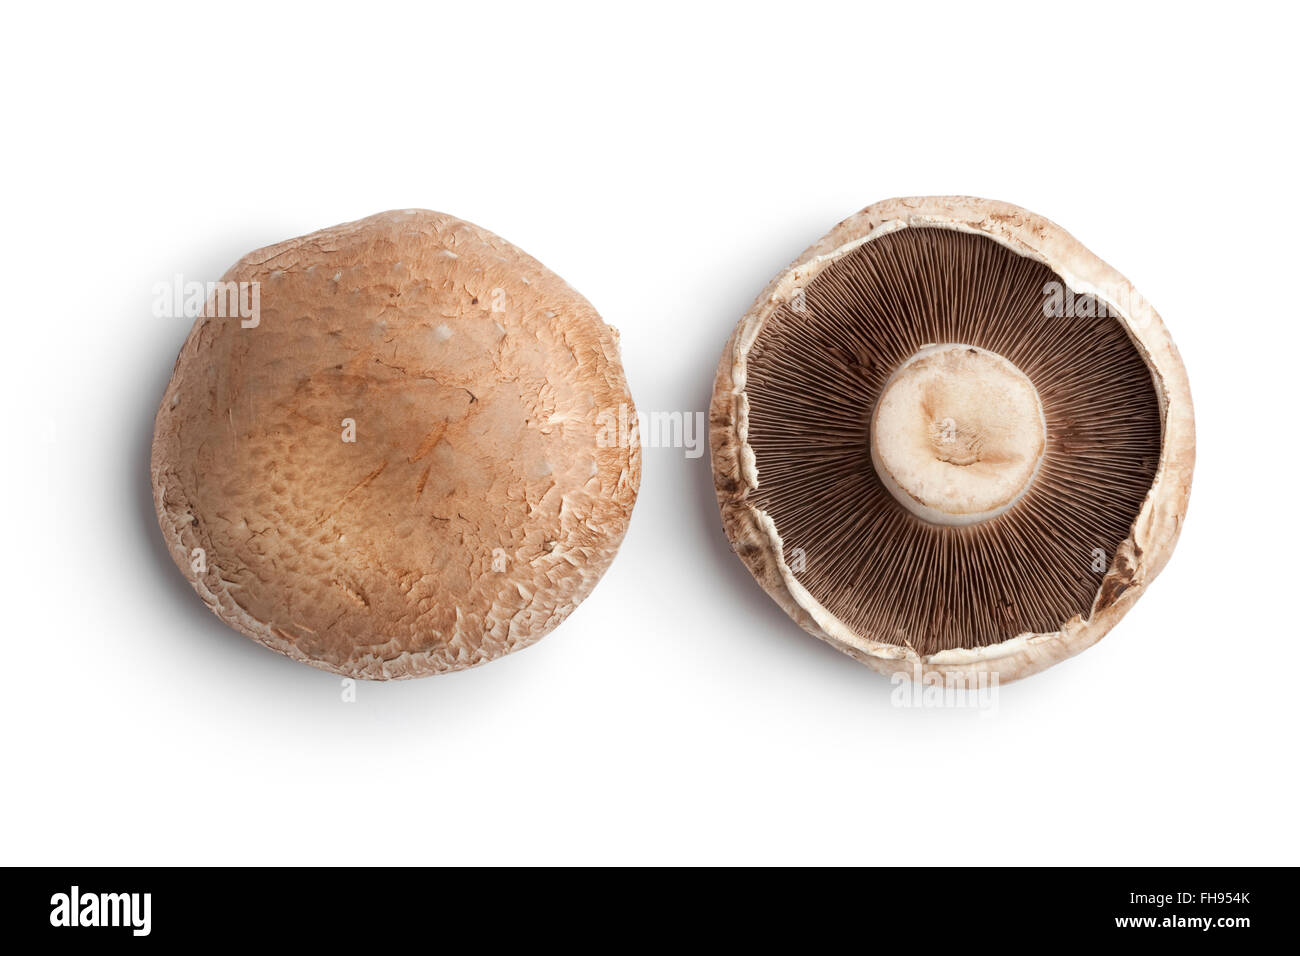 Fresh Raw Portobello Mushroom Isolated On White Background Stock Photo Alamy